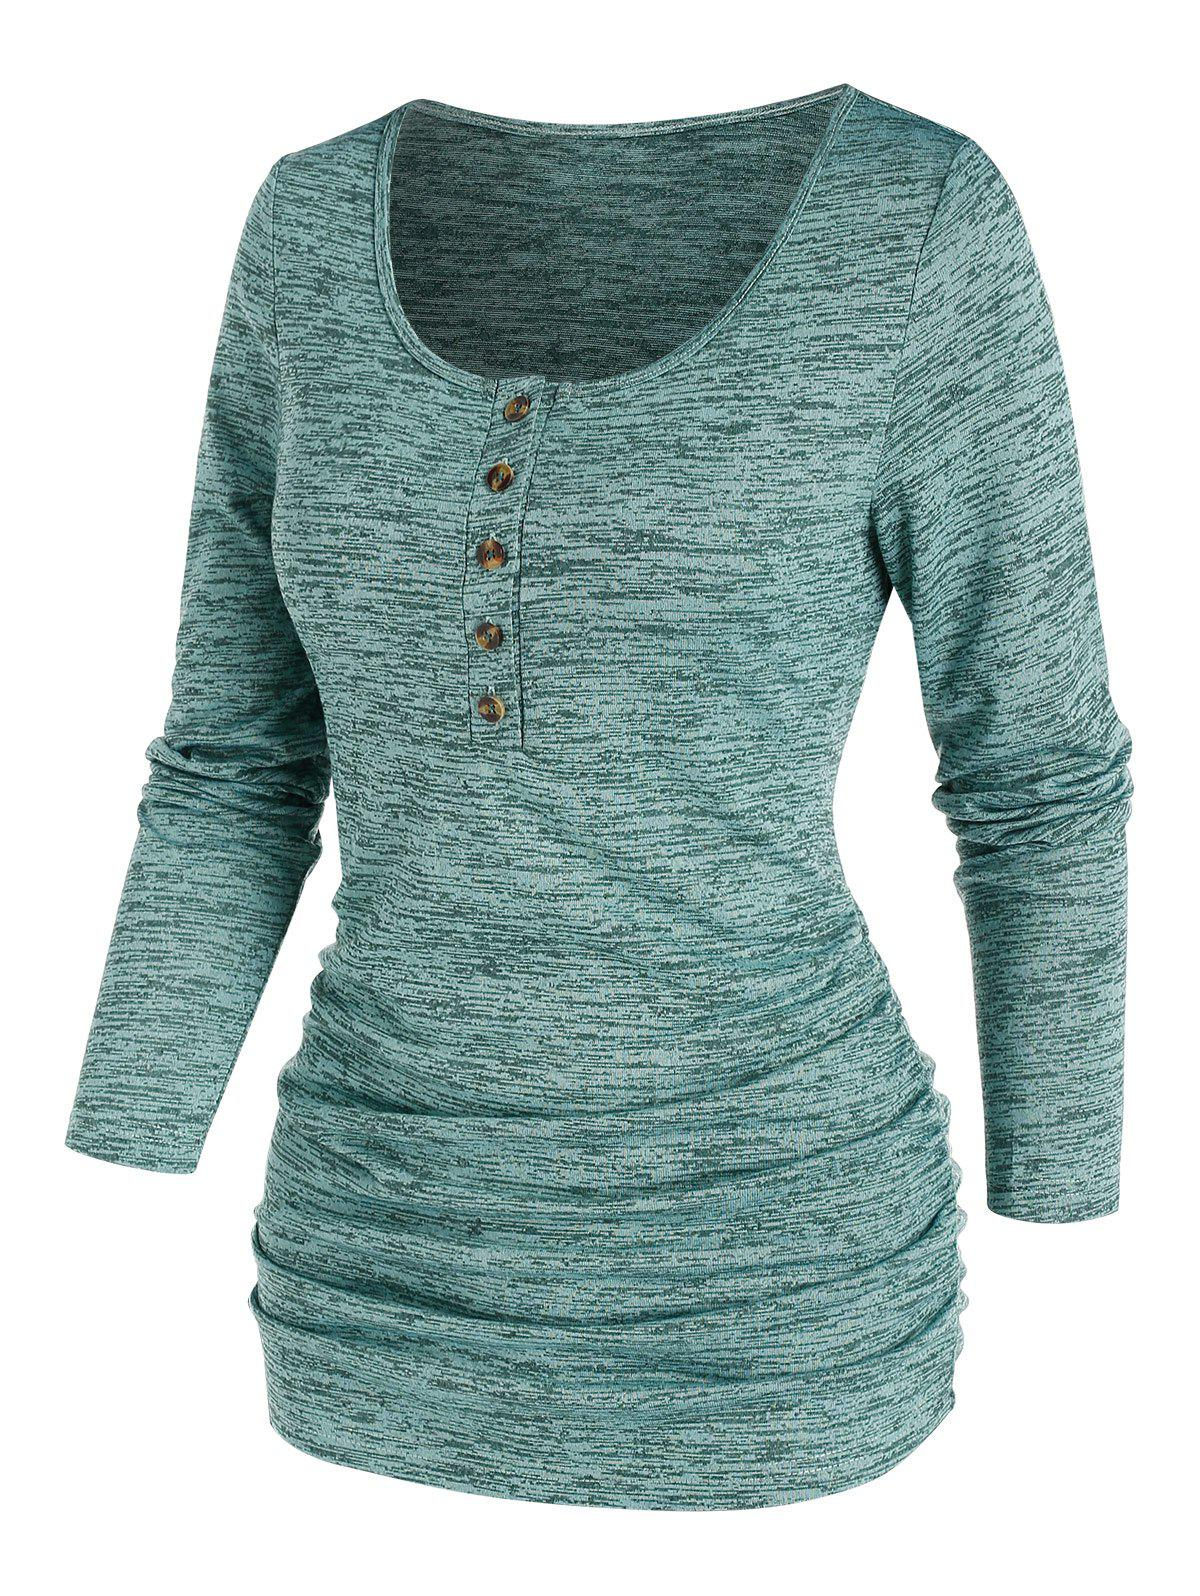 Ruched Heathered Henley T-shirt - GREEN XL